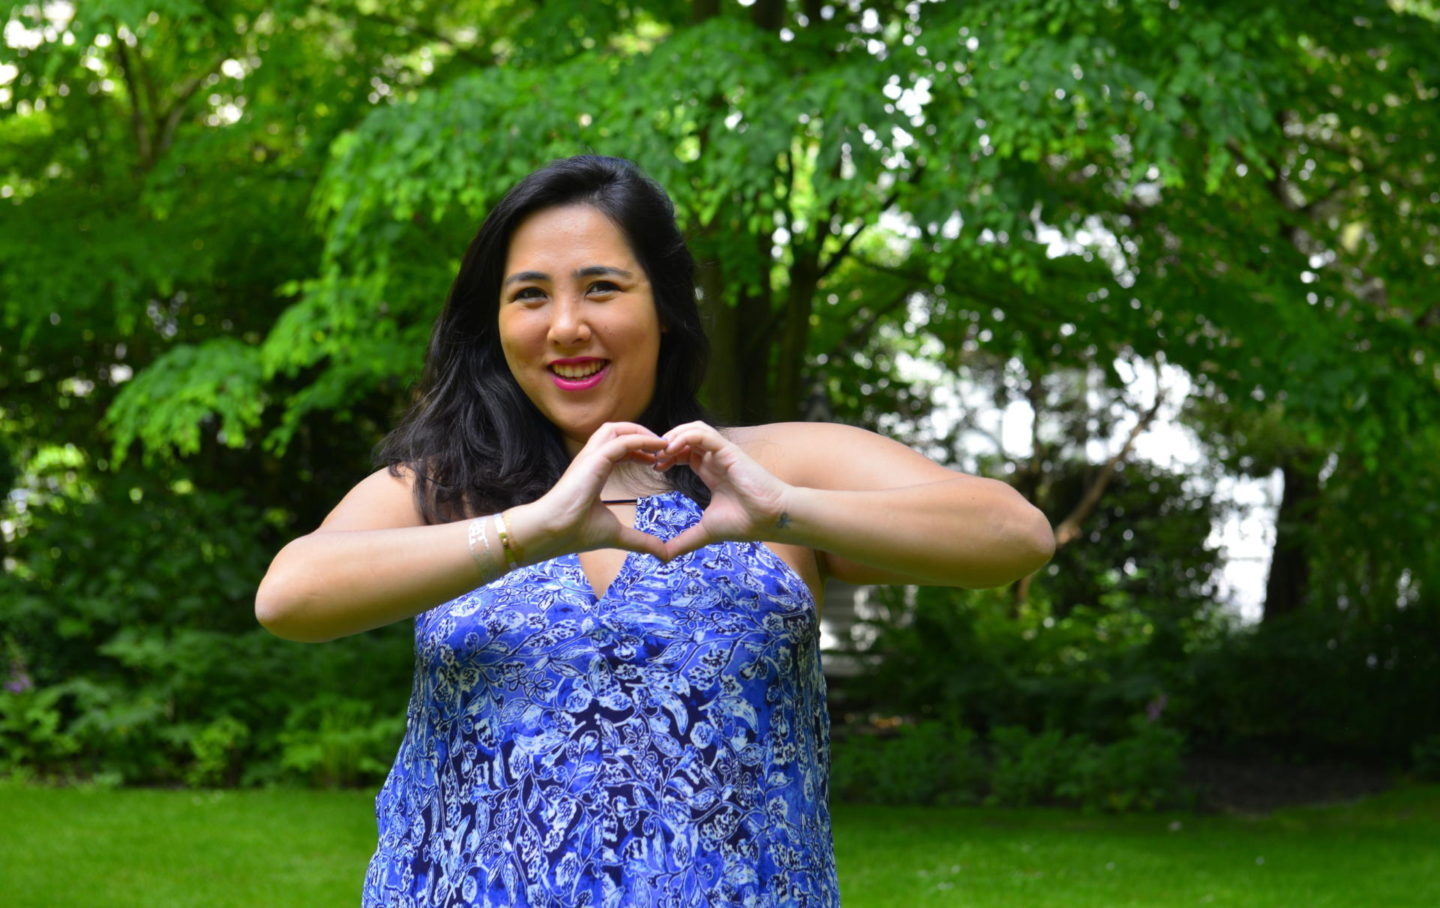 MICHELLE ELMAN ON HER SCARS, PCOS AND HOW SHE FOUND BODY POSITIVITY